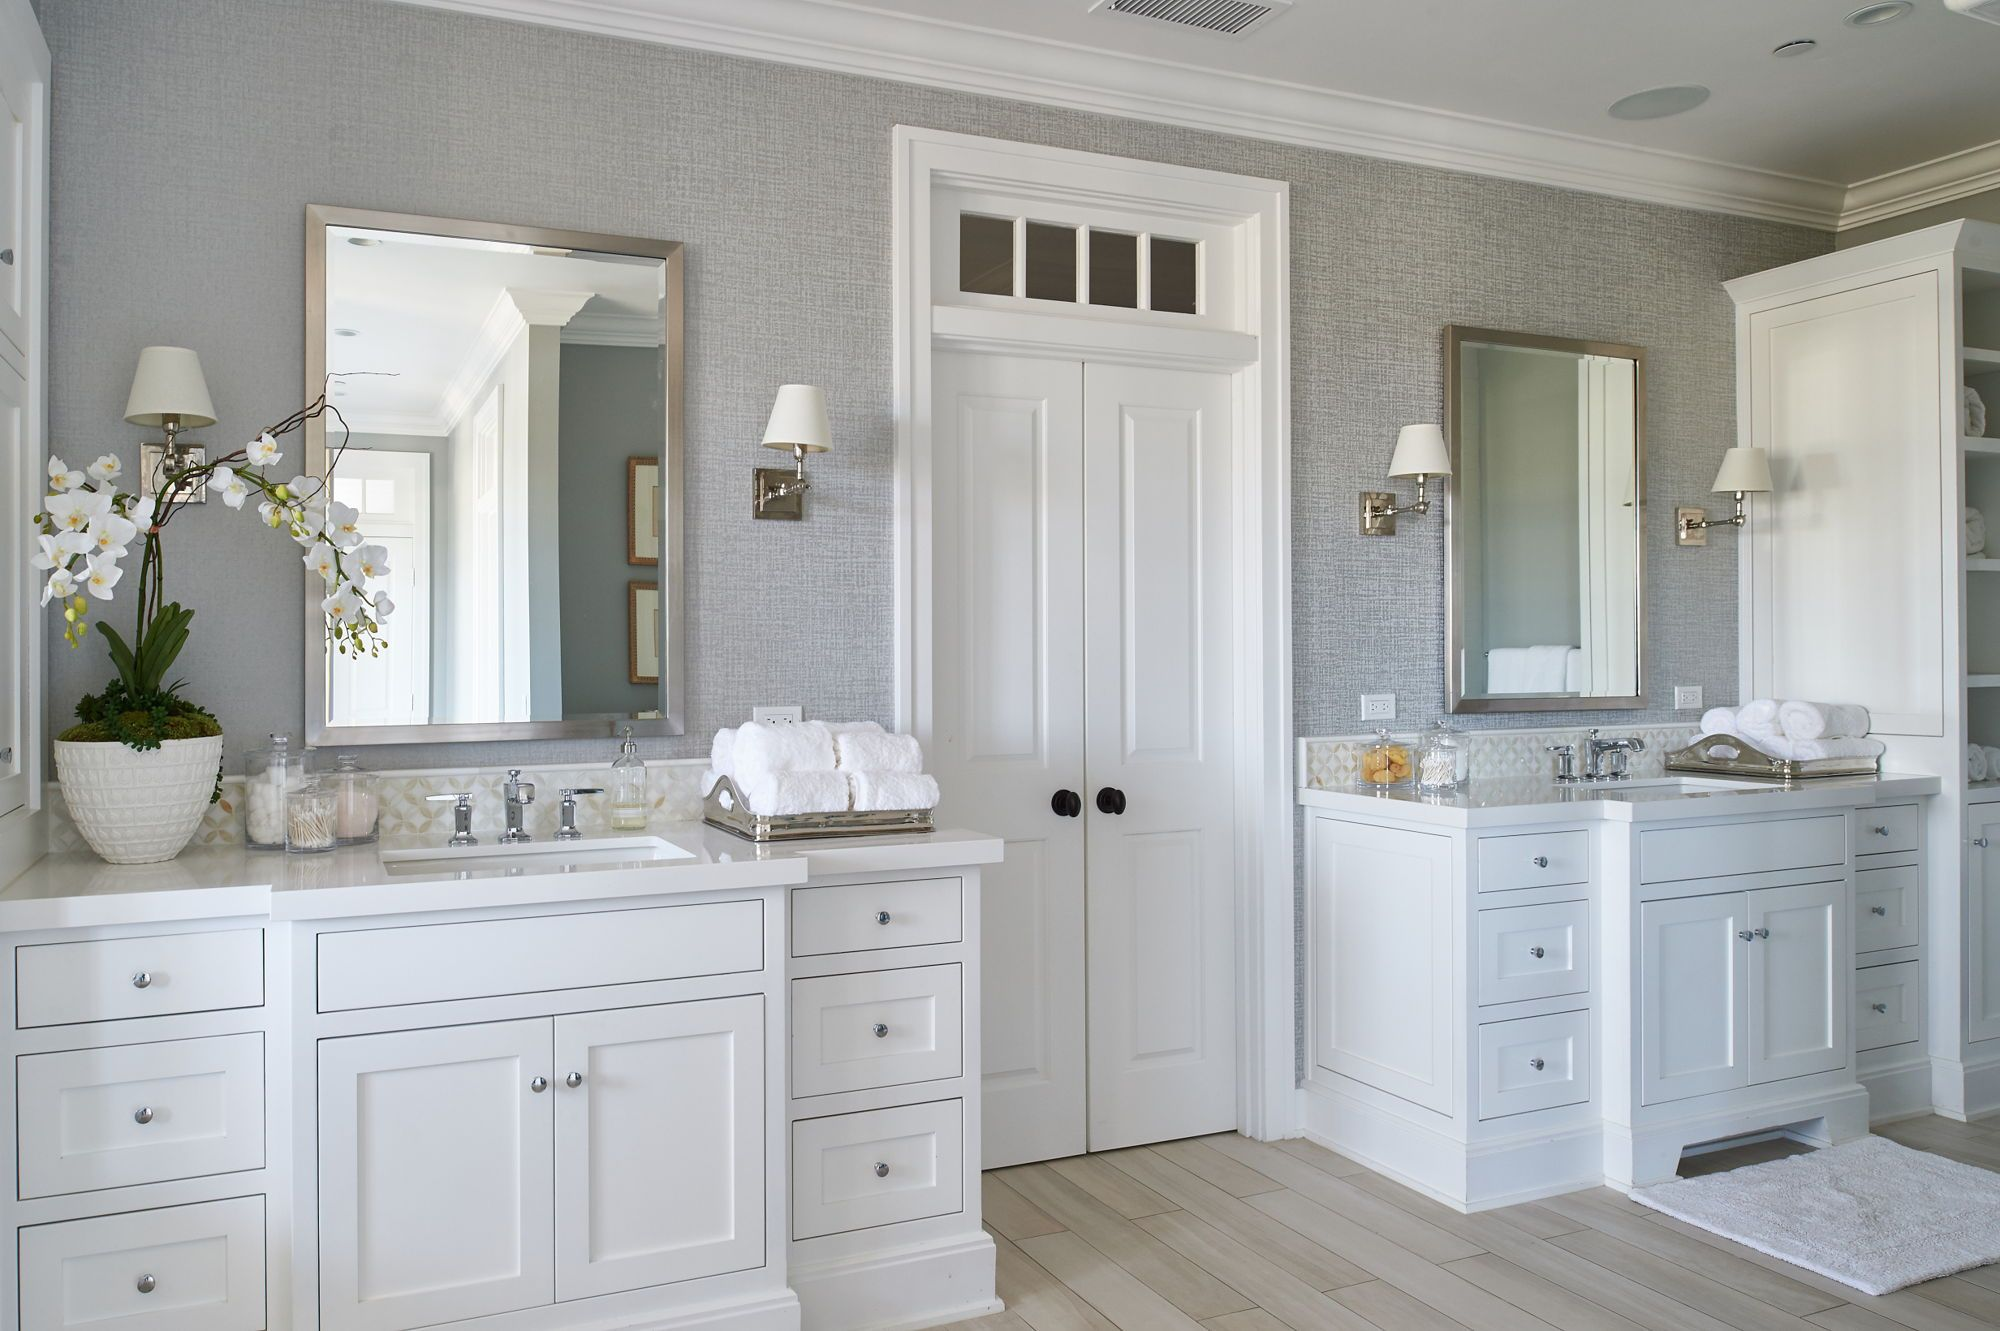 His and her vanities in a large master bathroom. White